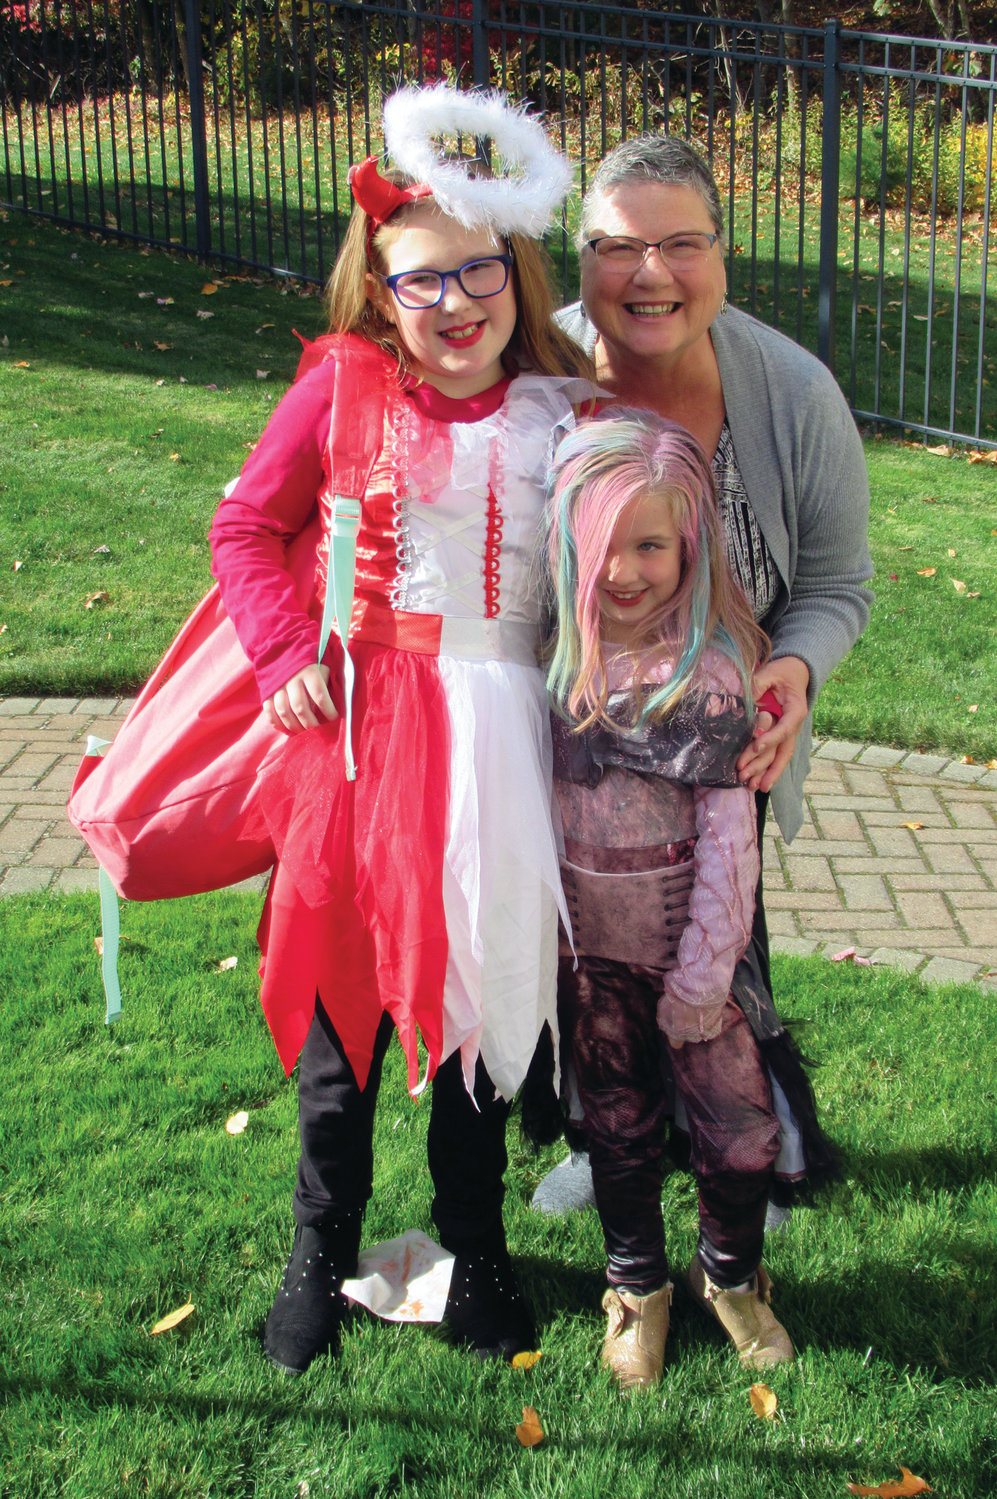 FAMILY FUN: Above, Carol March brought her grandchildren Morgan Harris and Liv Rose to Briarcliffe Manor Saturday so they could show off their classic costumes to their great-grandfather, Vinny DiDinato.